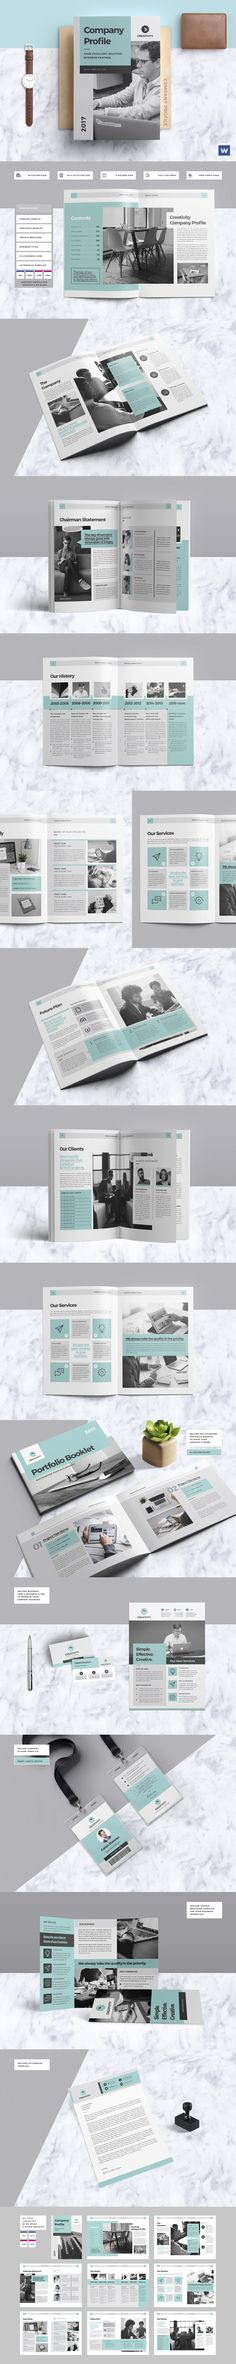 Clean Professional Company Profile With Include Portfolio Booklet Trifold Brochure More